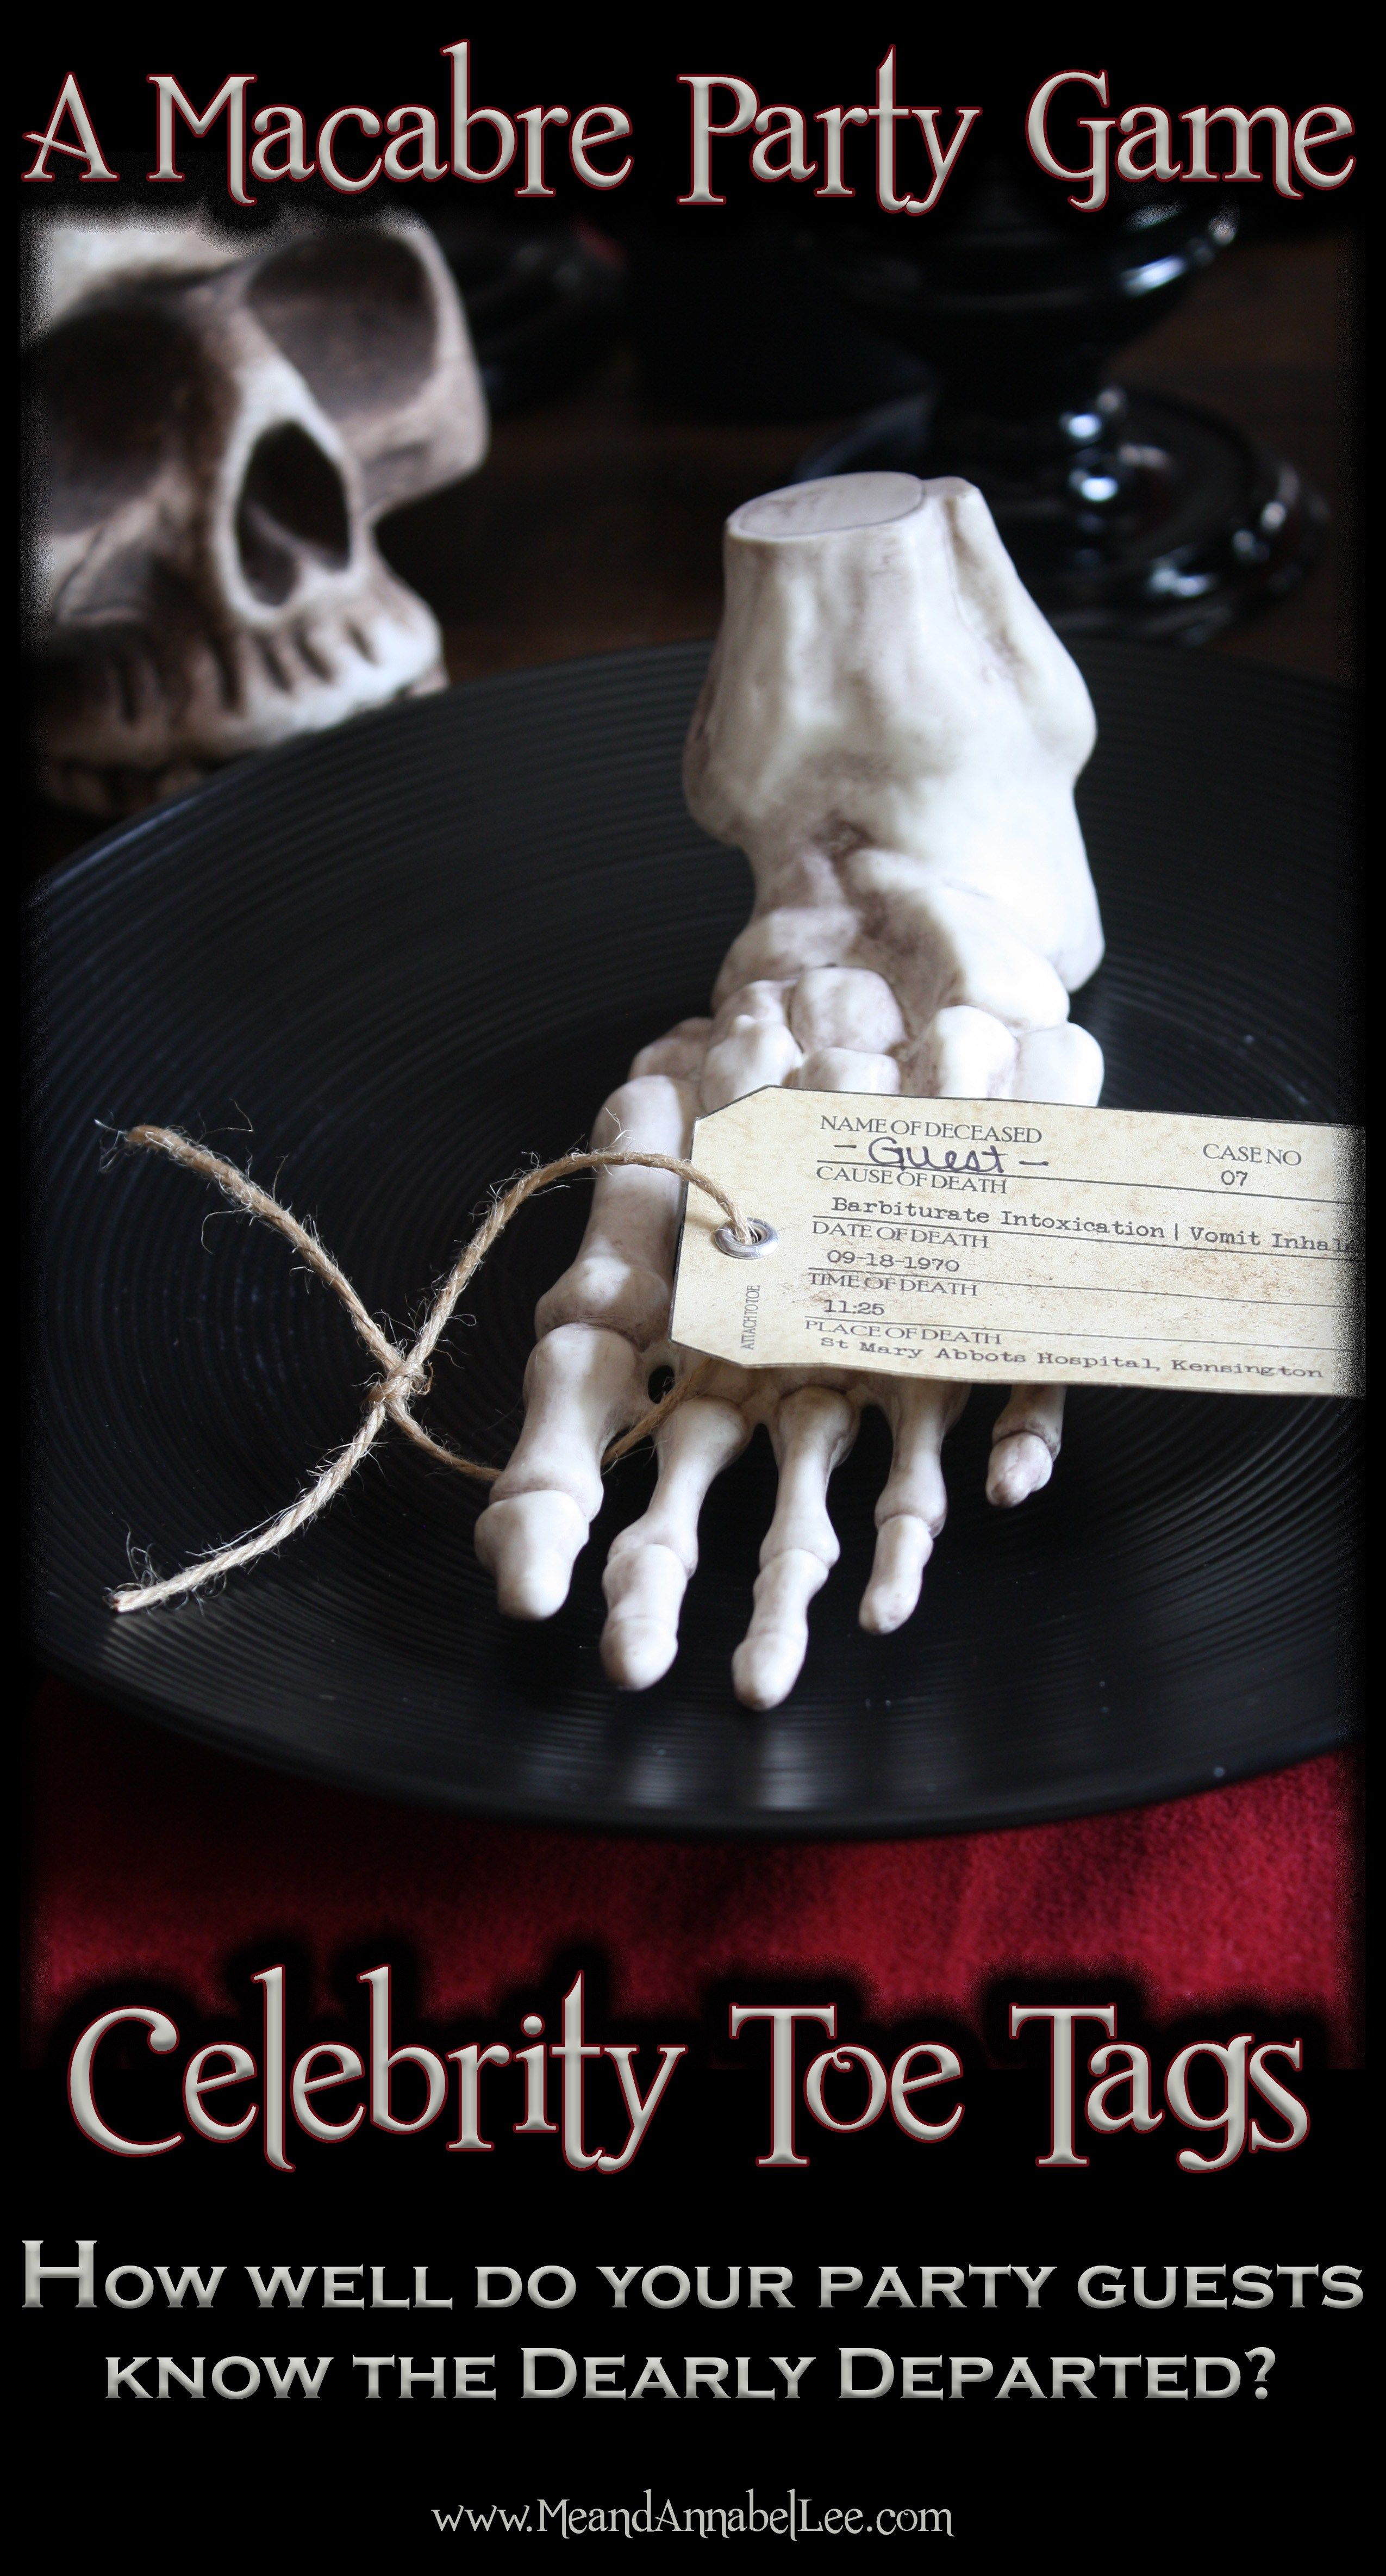 Dinner Party Game Ideas For Adults Part - 50: Halloween Adult Party Game | Celebrity Toe Tags | Famous Deaths Trivia |  Www.MeandAnnabelLee